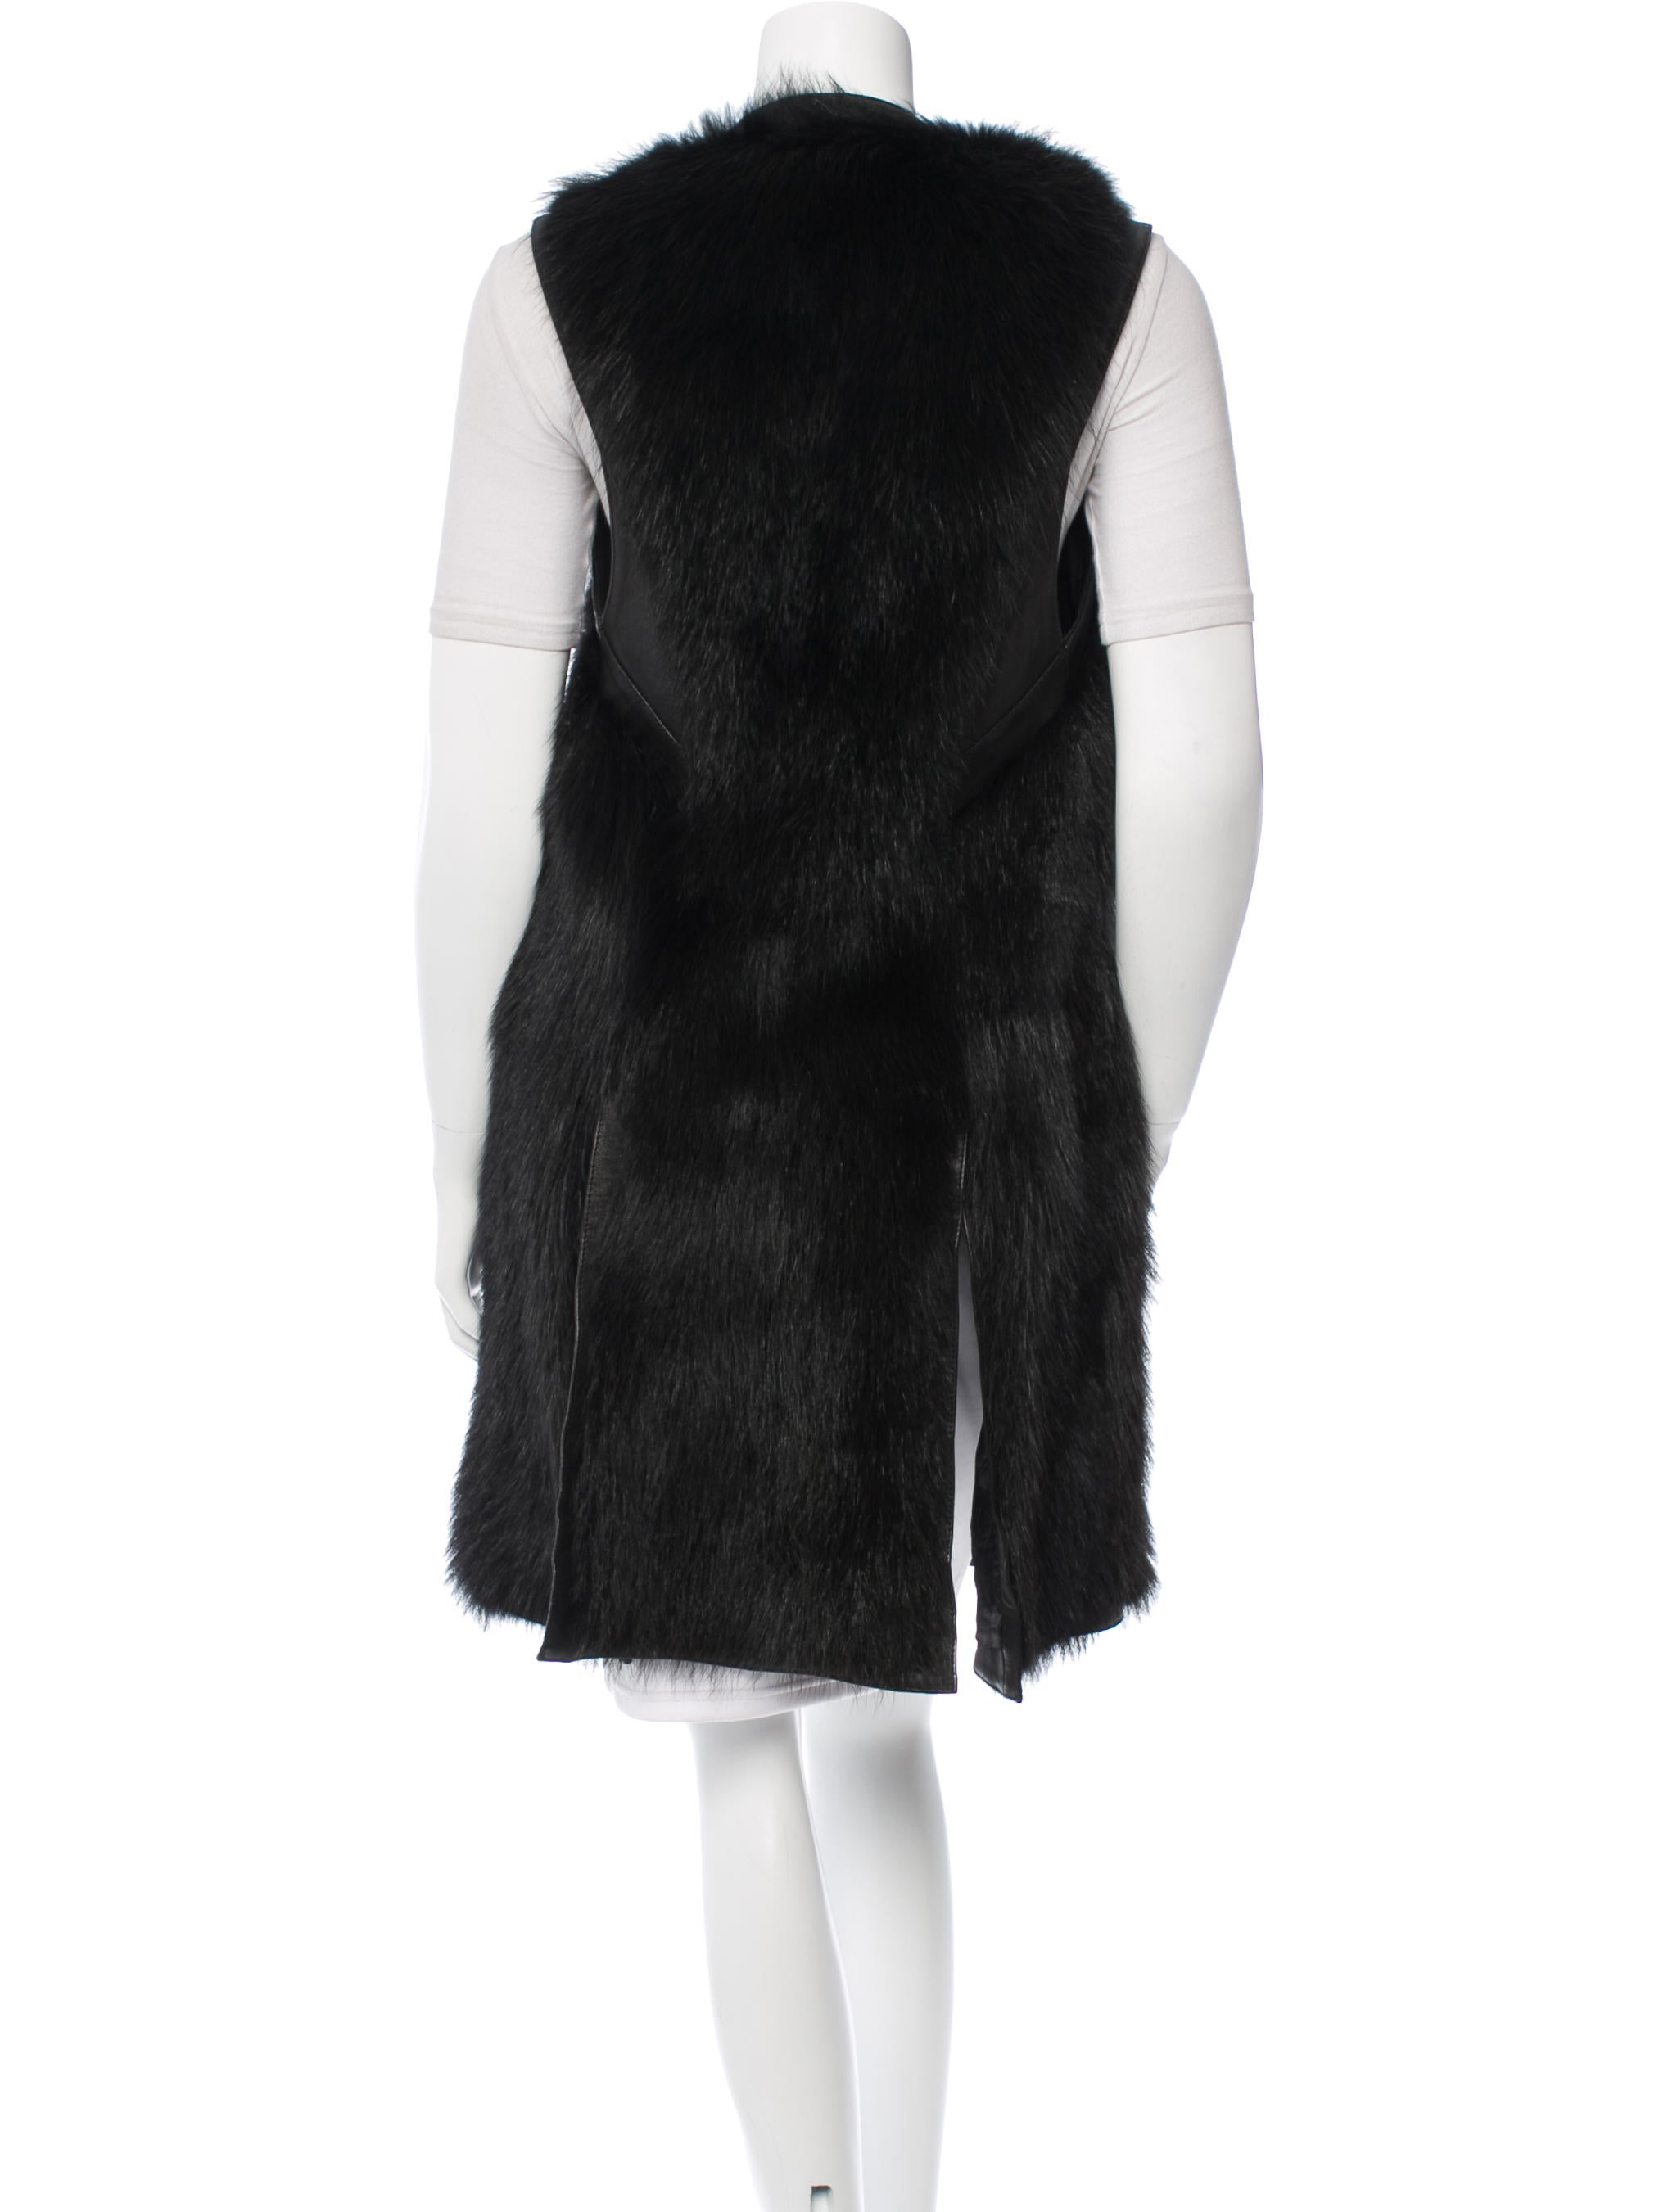 Find great deals on eBay for faux fur leather vest. Shop with confidence.